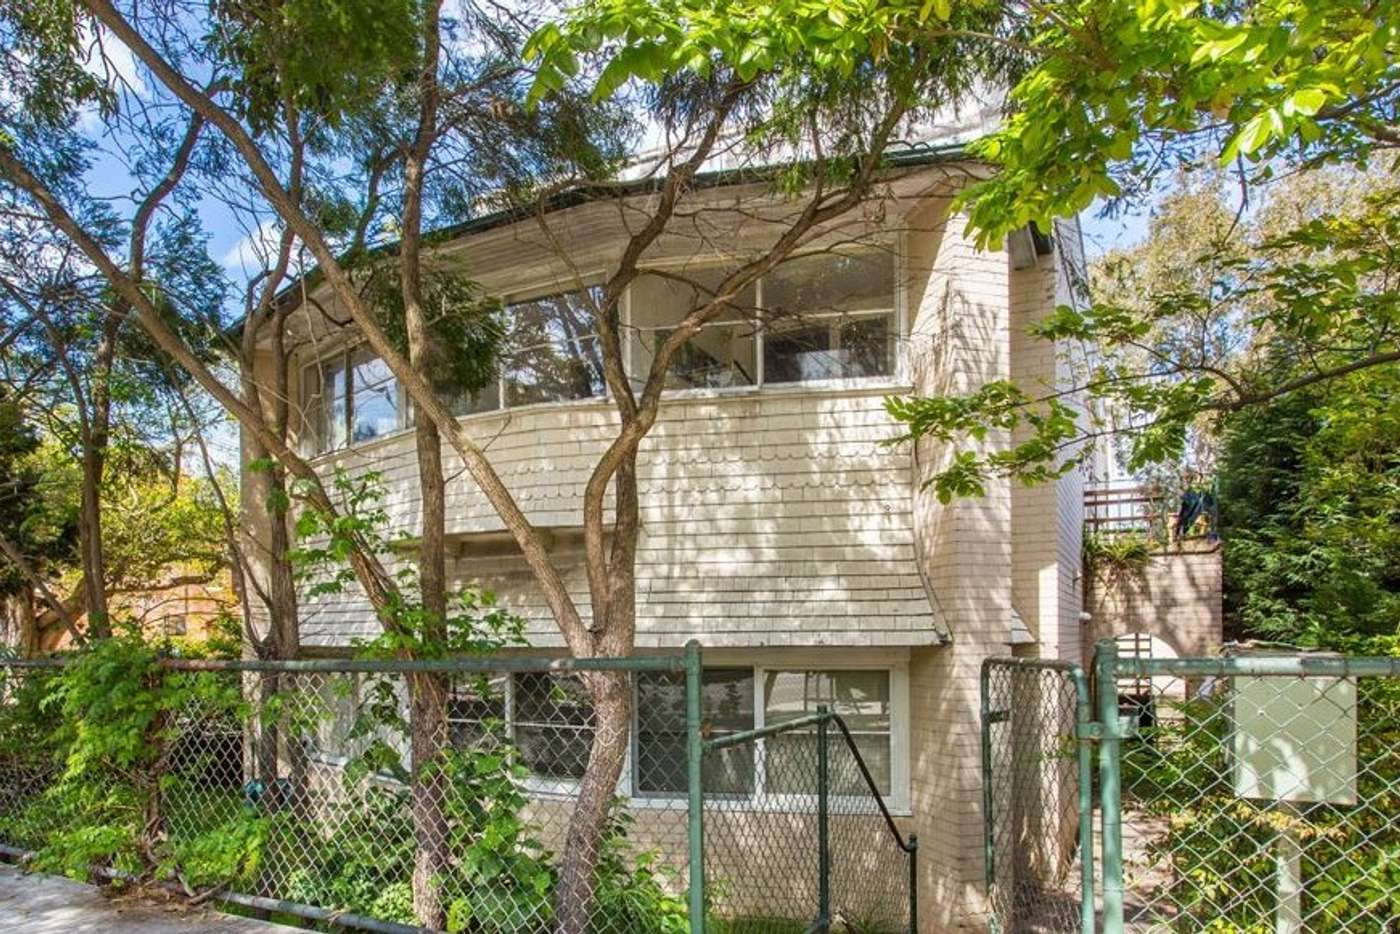 Main view of Homely apartment listing, 4/71 Kurraba Road, Neutral Bay NSW 2089